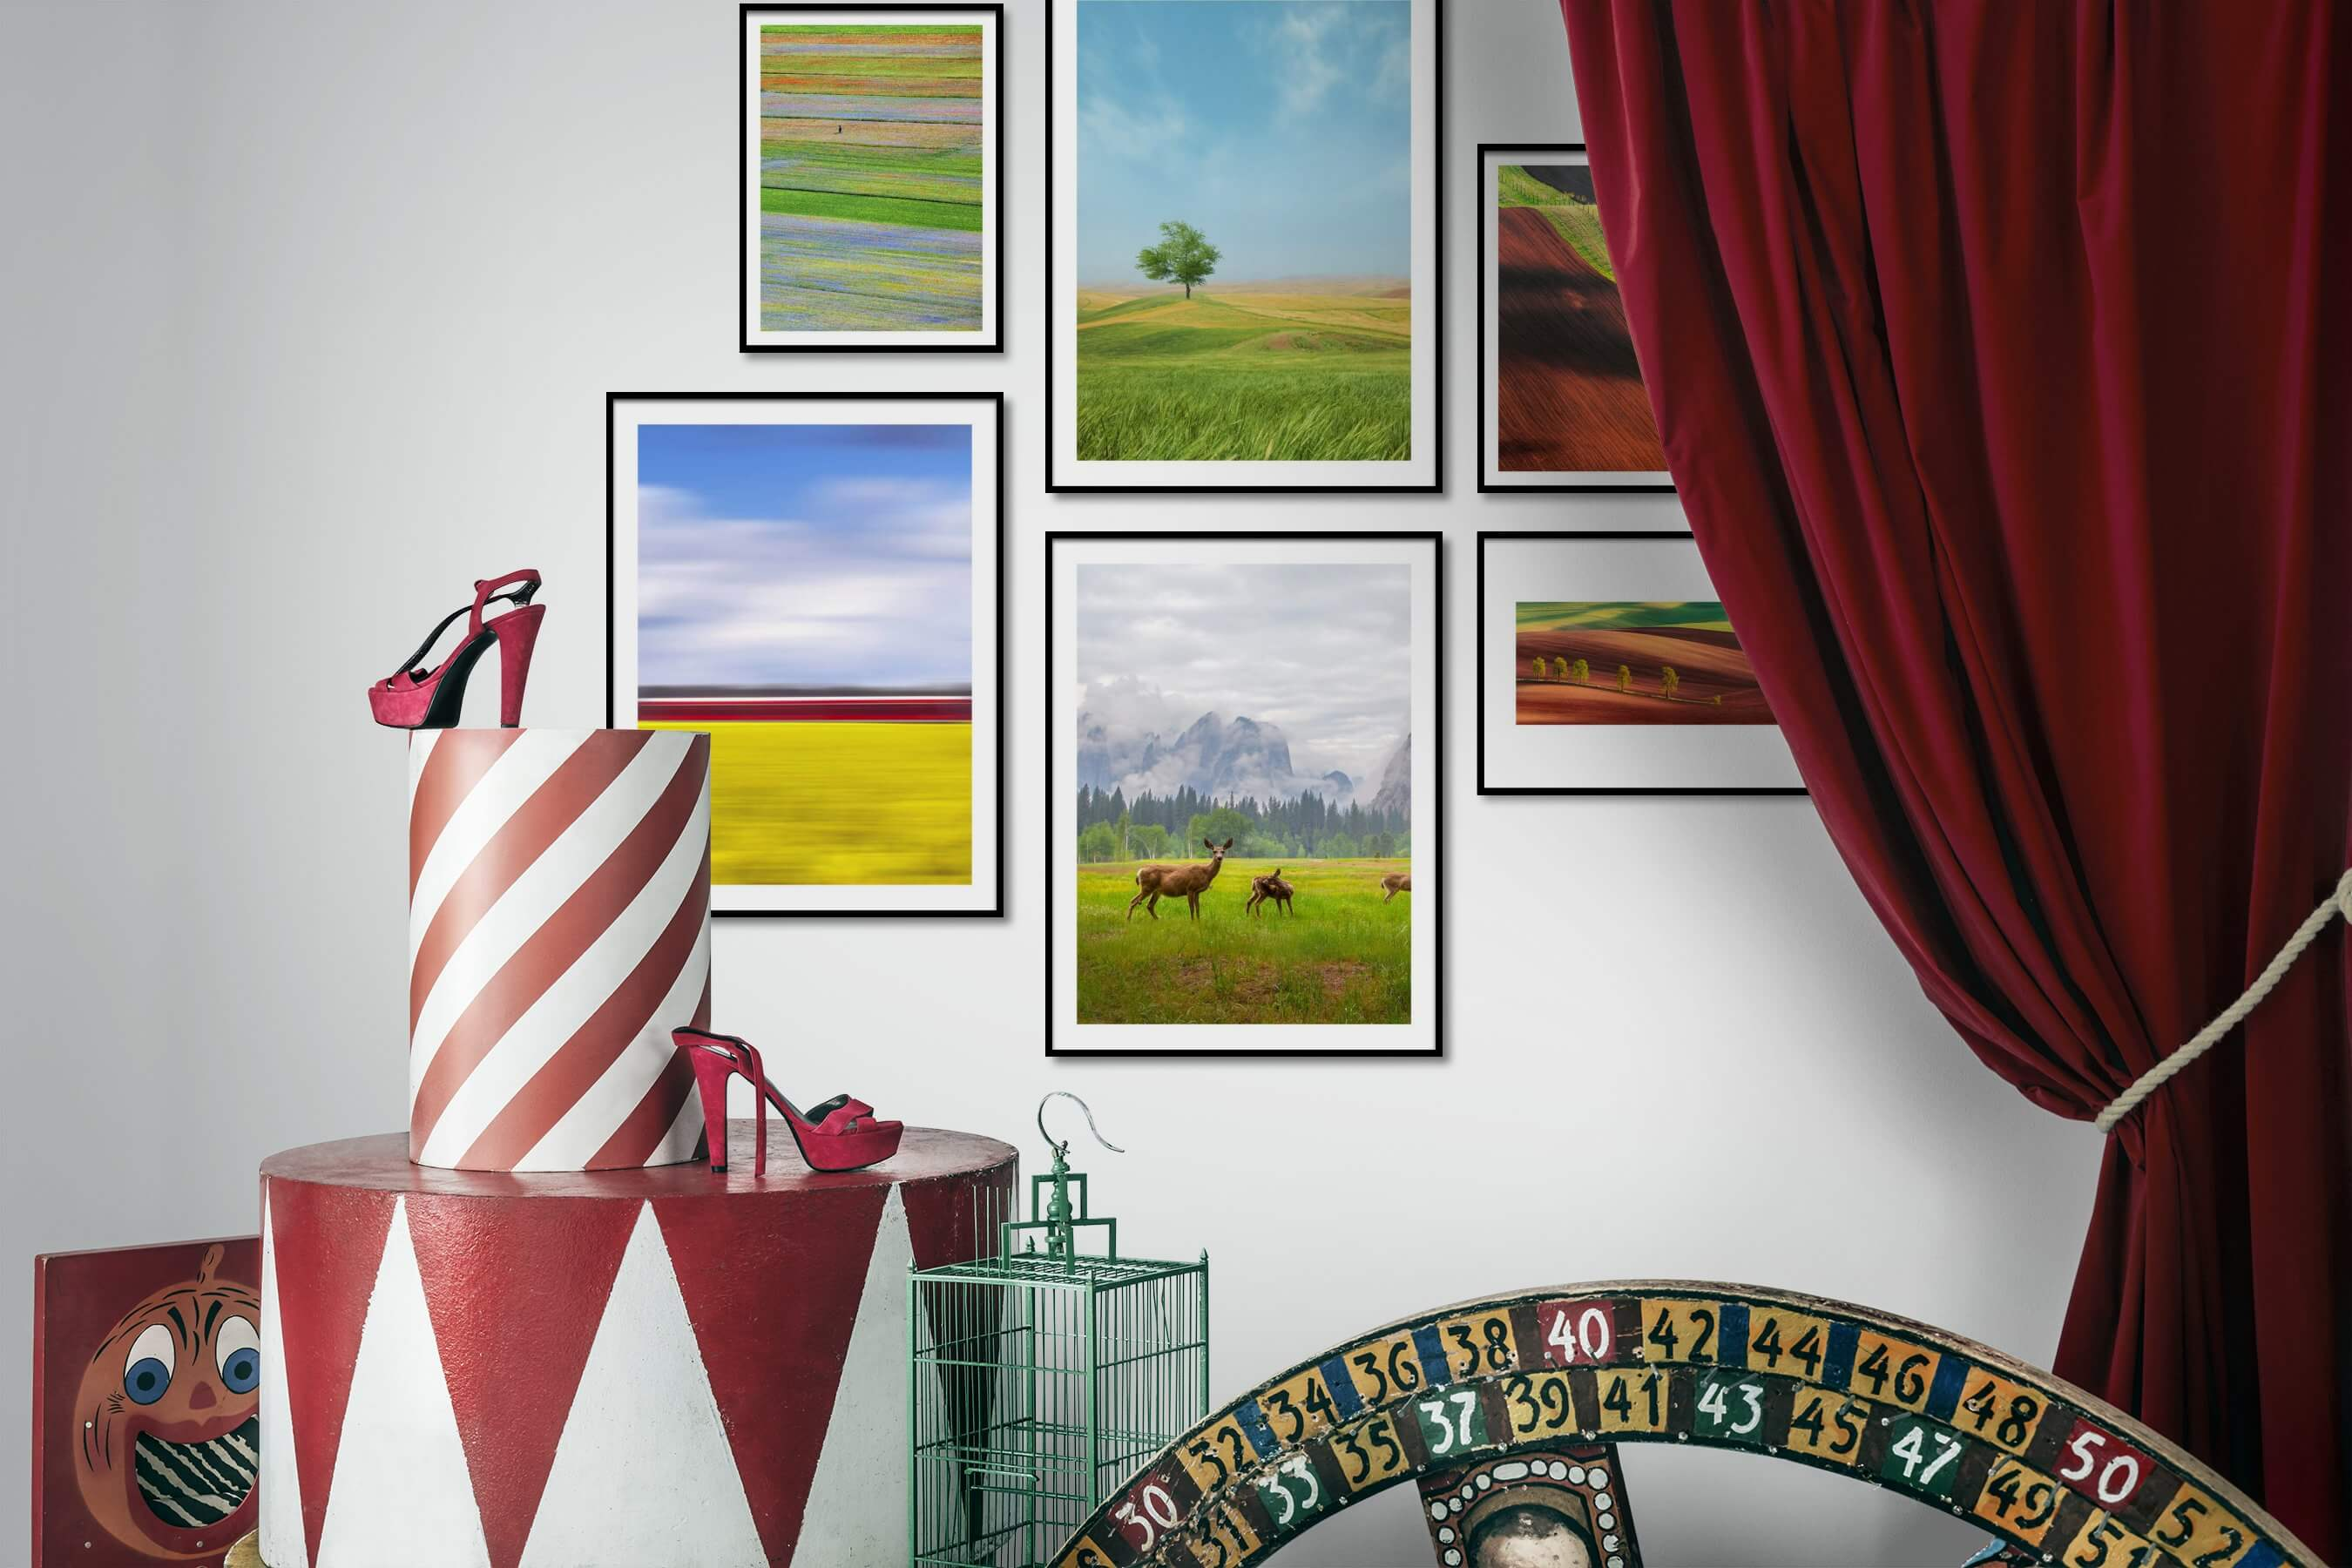 Gallery wall idea with six framed pictures arranged on a wall depicting For the Minimalist, Country Life, Mindfulness, and Animals